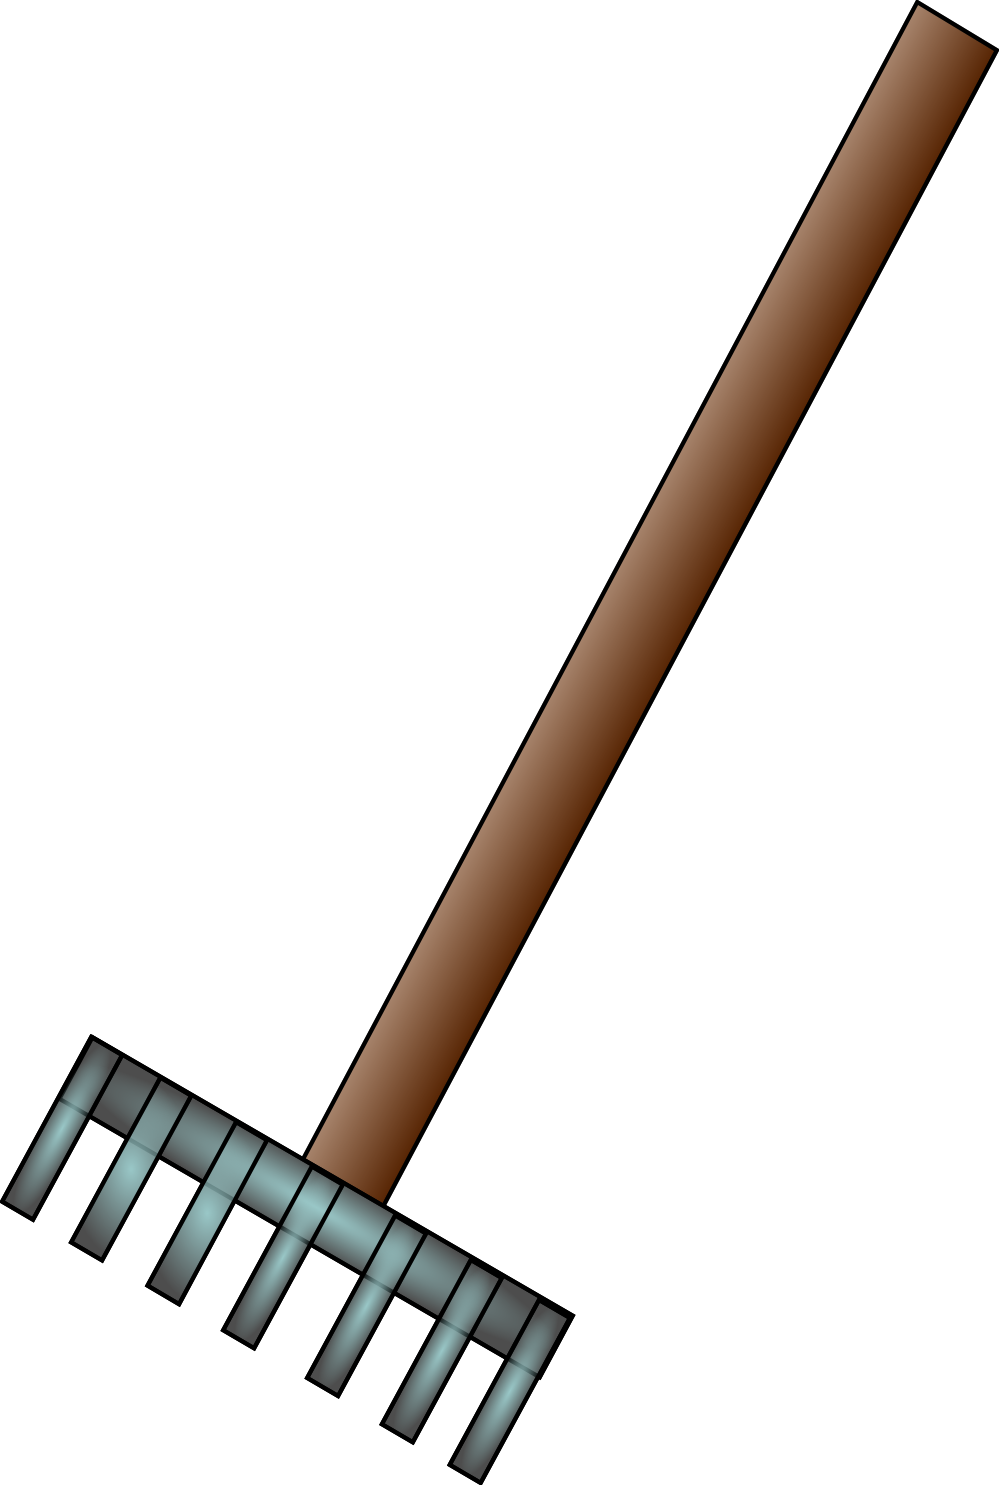 Rake clipart. And leaves clip art